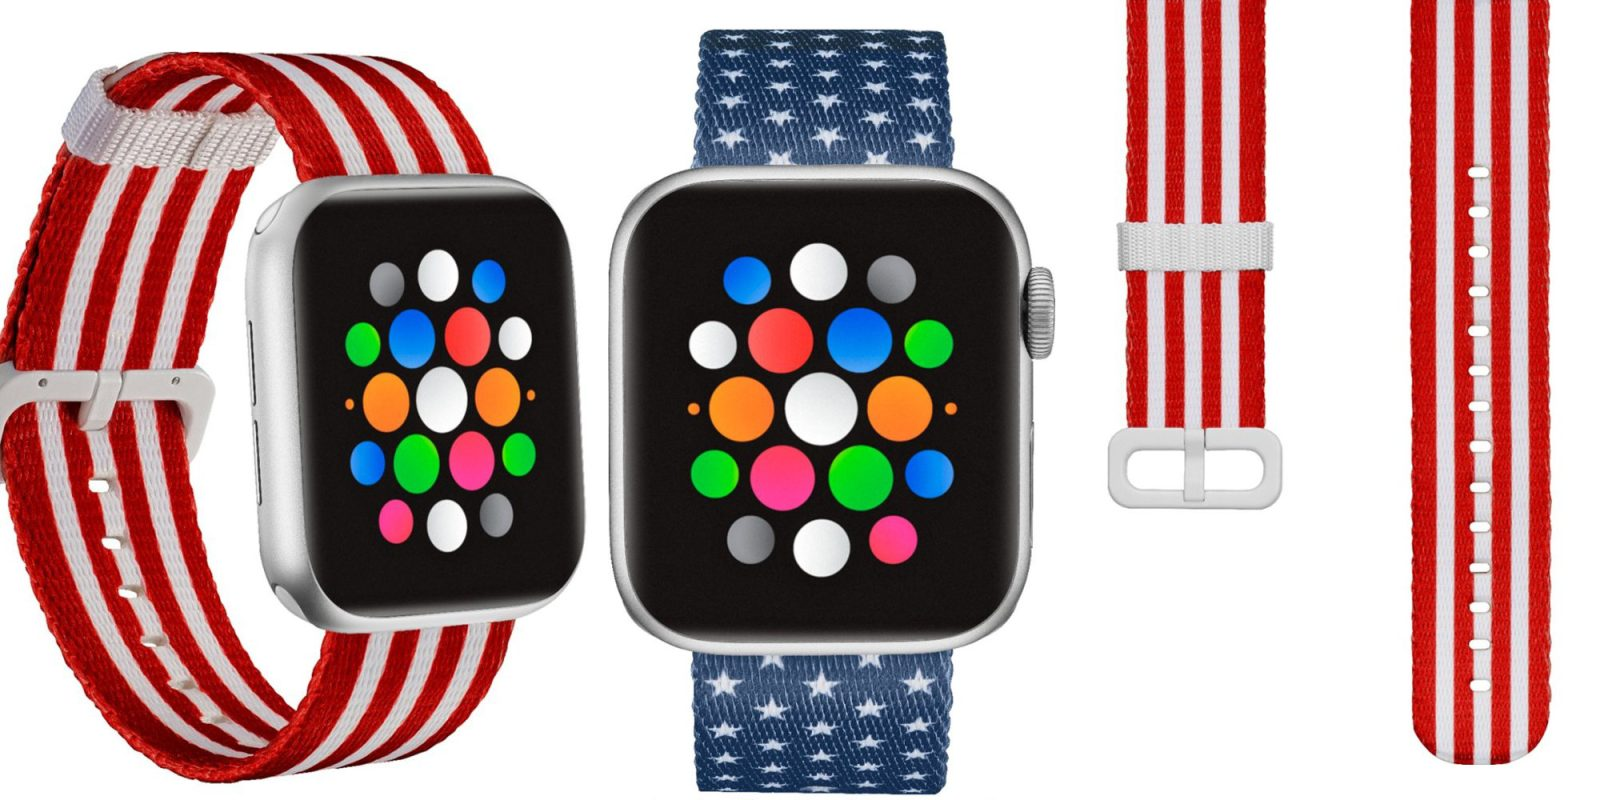 Stars and stripes Modal Apple Watch bands now just $10 (Today only, 50% off)